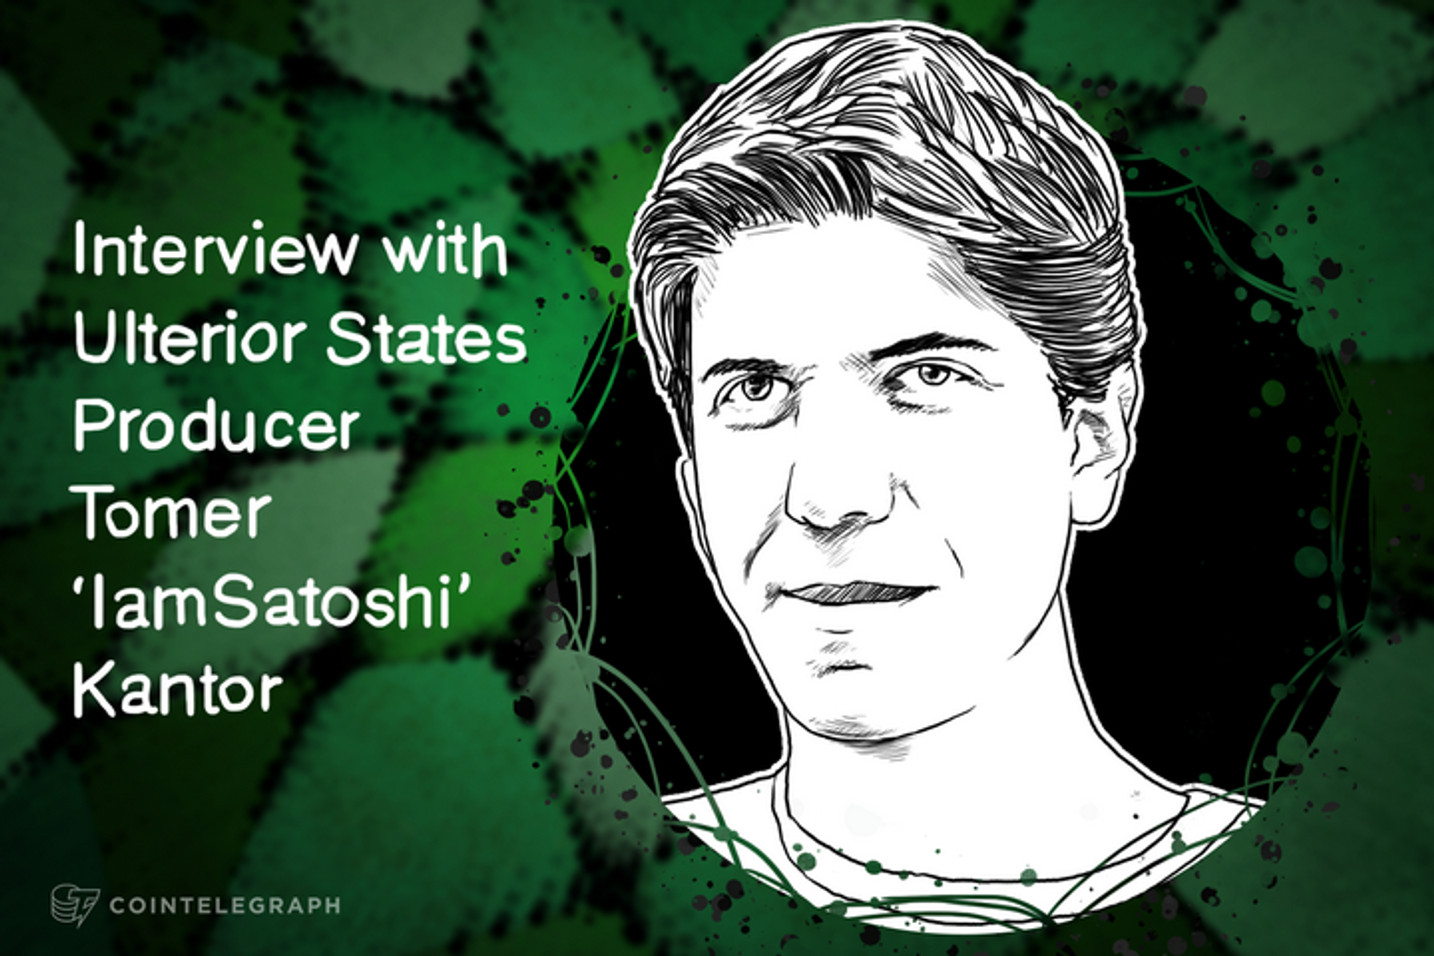 Tomer 'IamSatoshi' Kantor: 'I Still Look at Bitcoin as Political Activism'